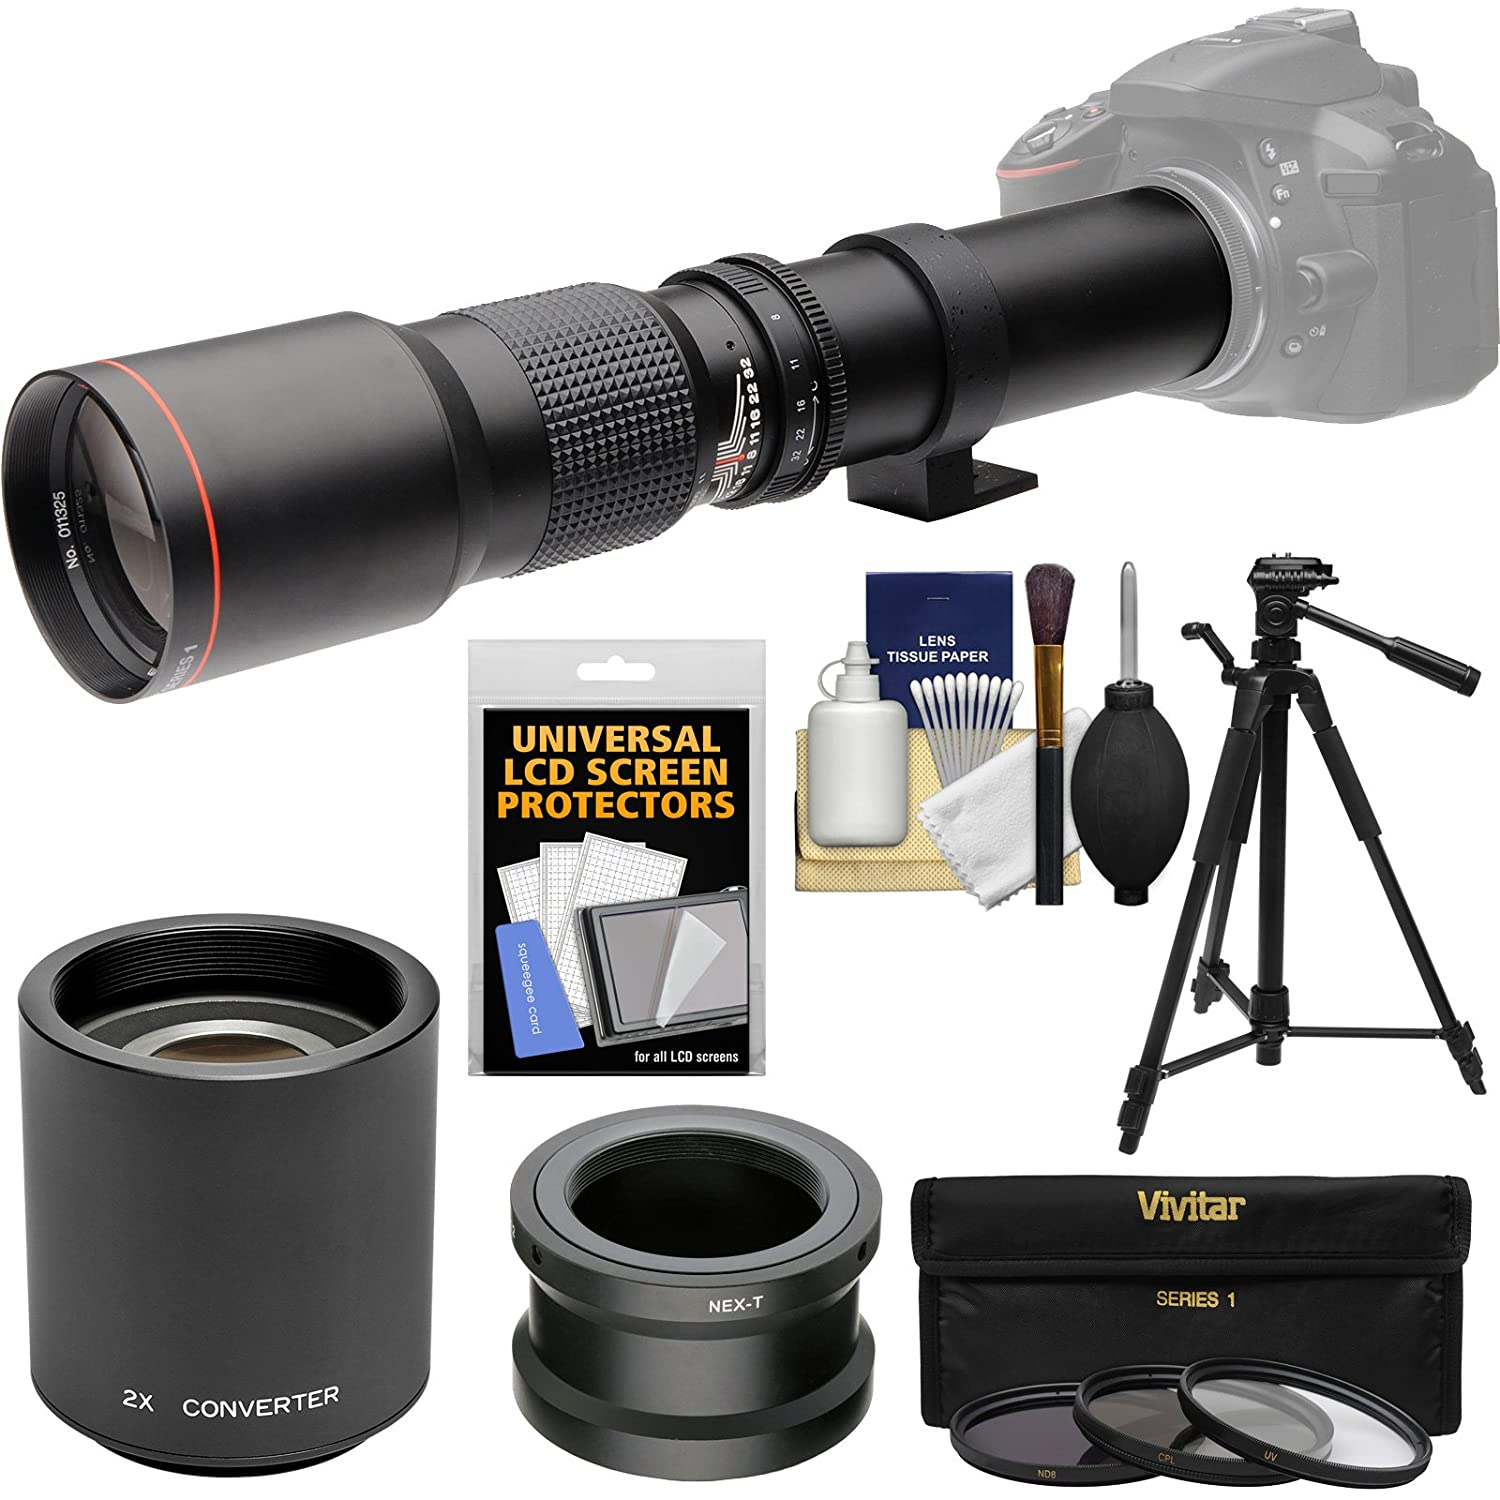 iConcepts 2.0x High Definition Telephoto Conversion Lens for Fujifilm Finepix S9600